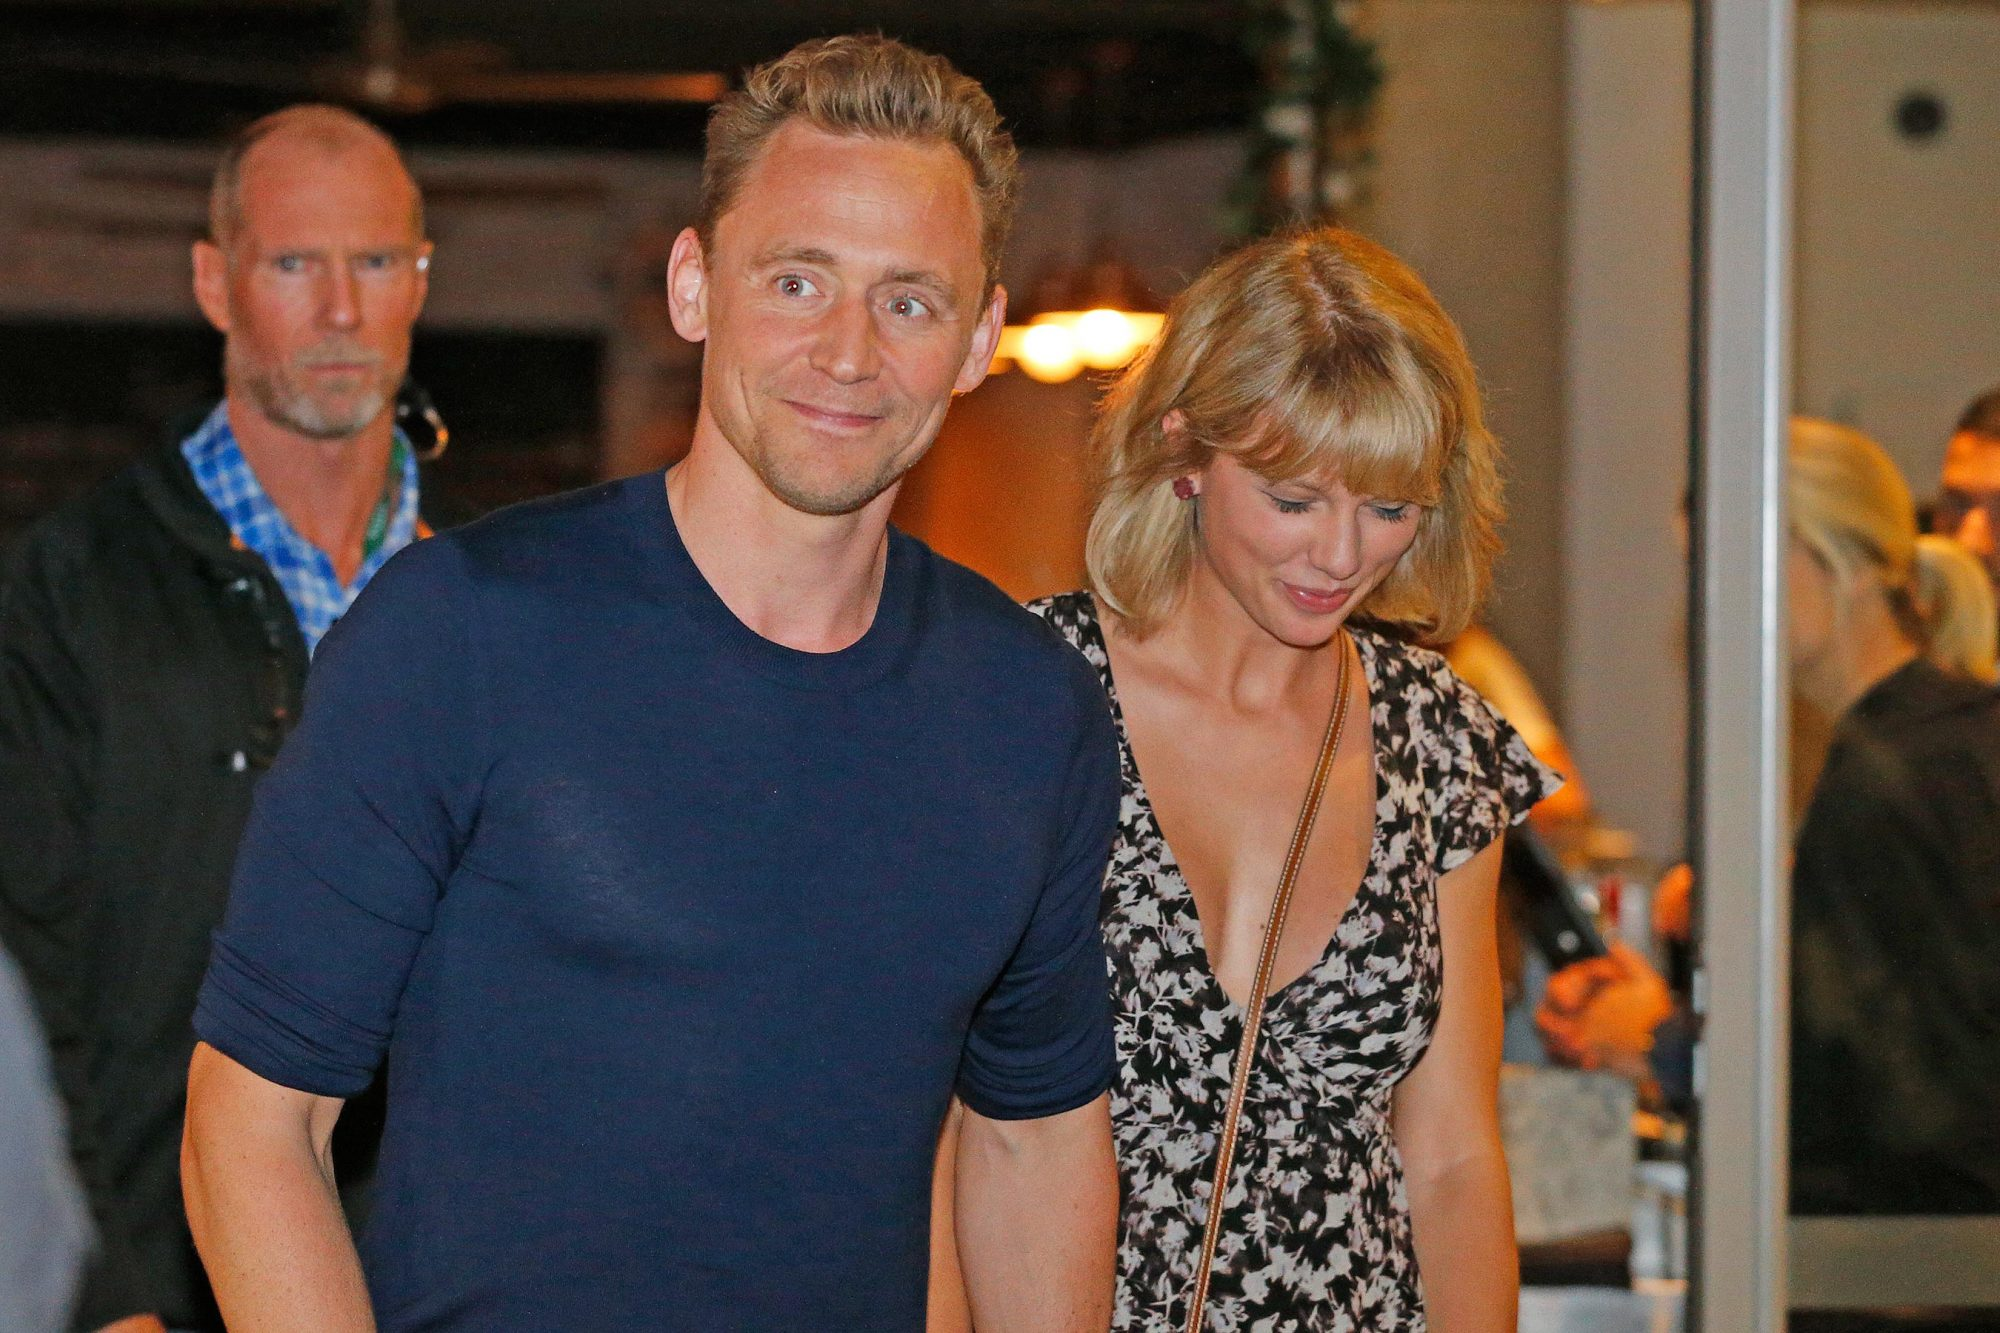 Tom Hiddleston And Taylor Swift Sighting In Broadbeach